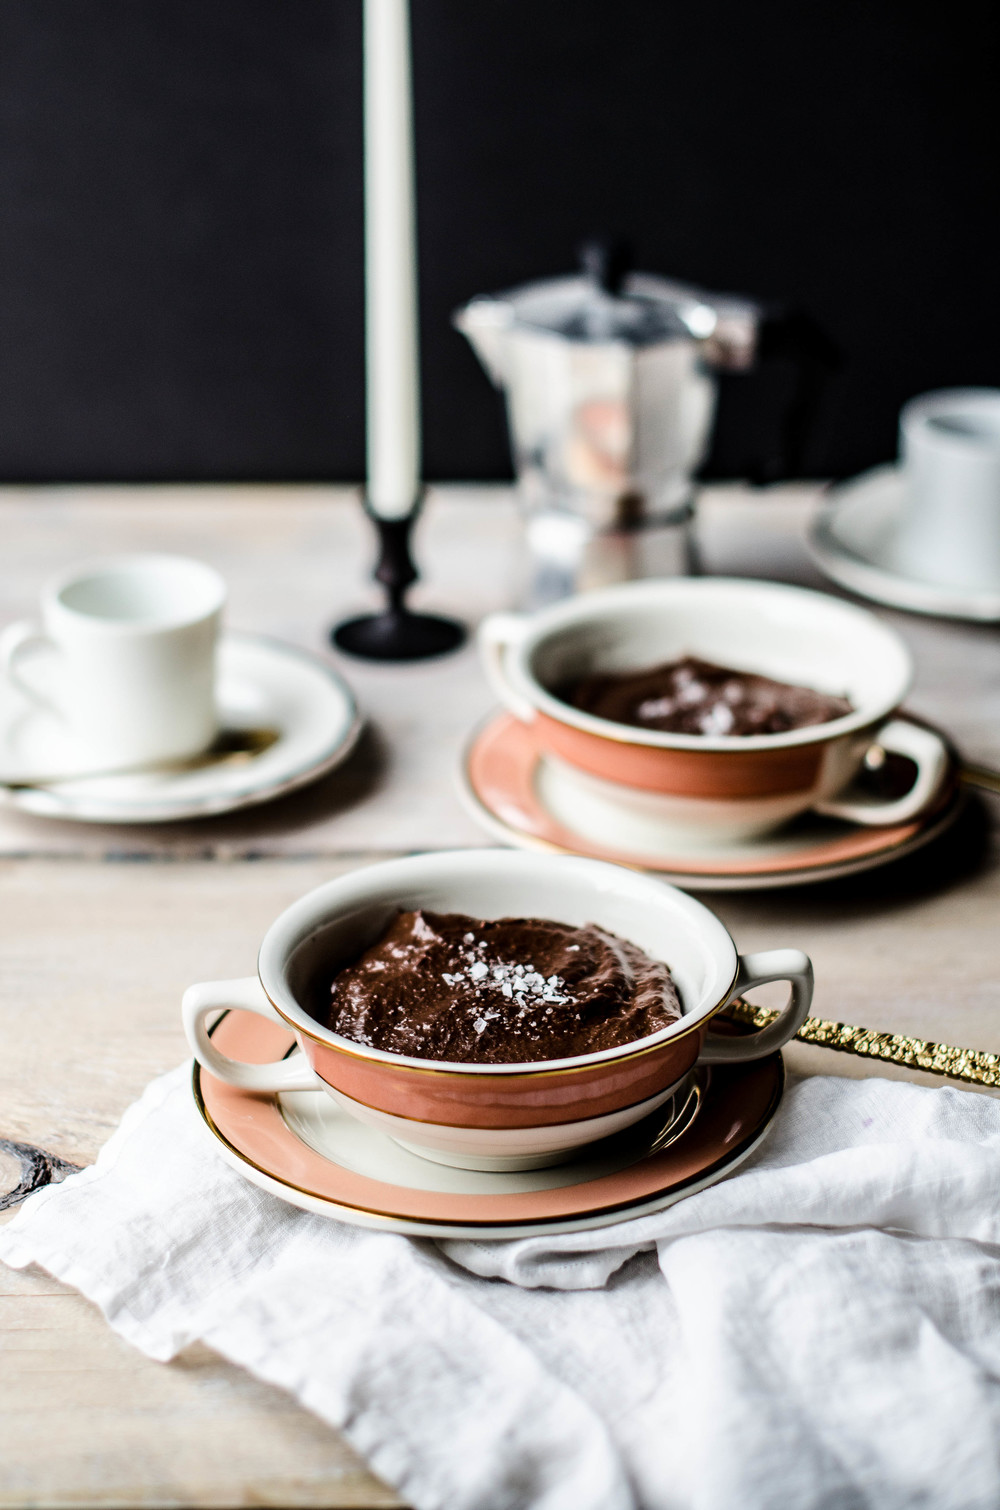 ROSE & IVY JOURNAL DOUBLE CHOCOLATE PUDDING